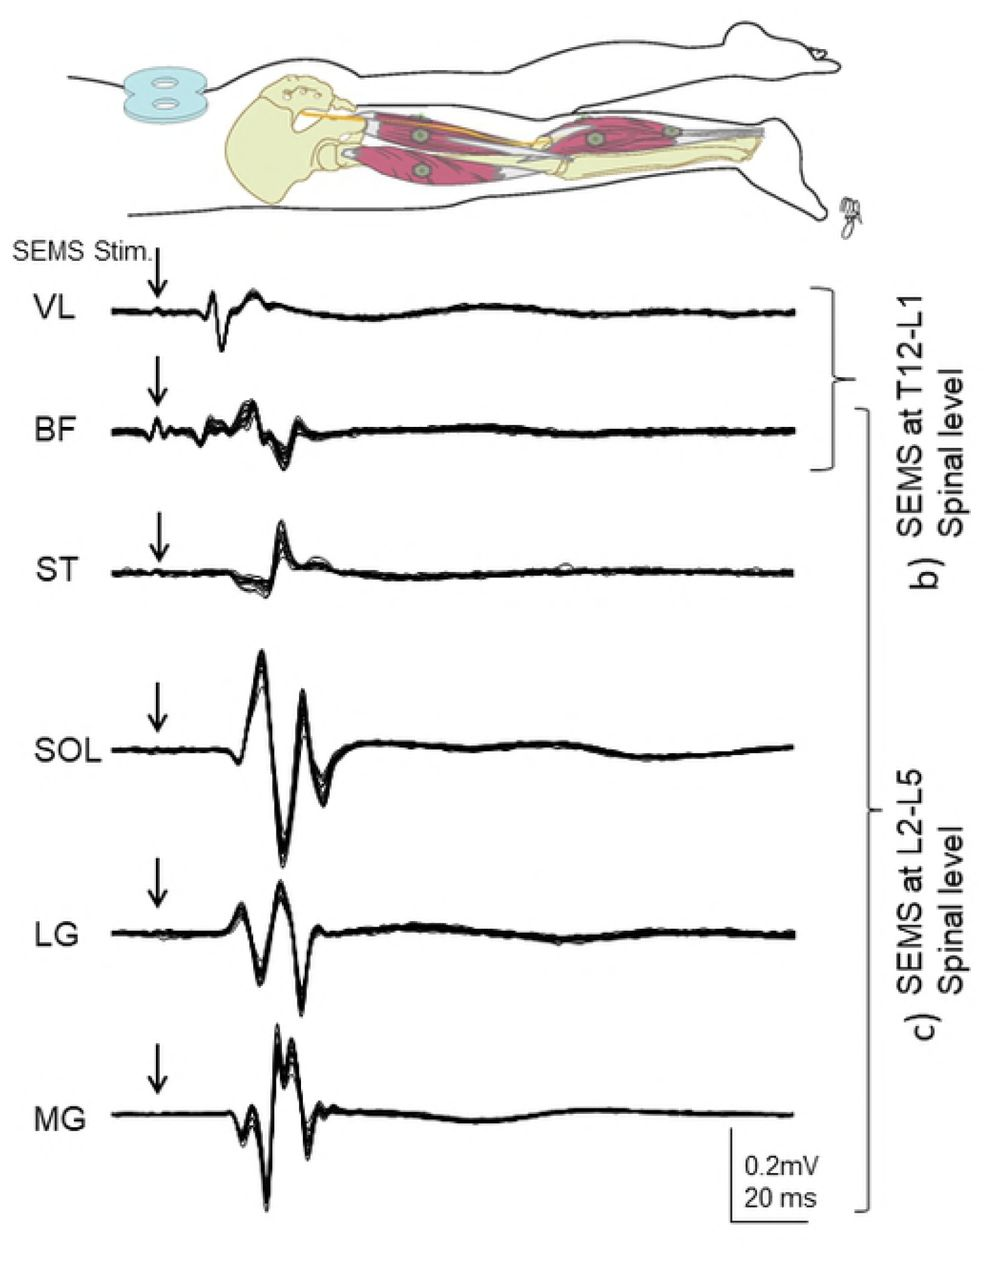 Non-invasive spinal electro-magnetic stimulation (SEMS): a